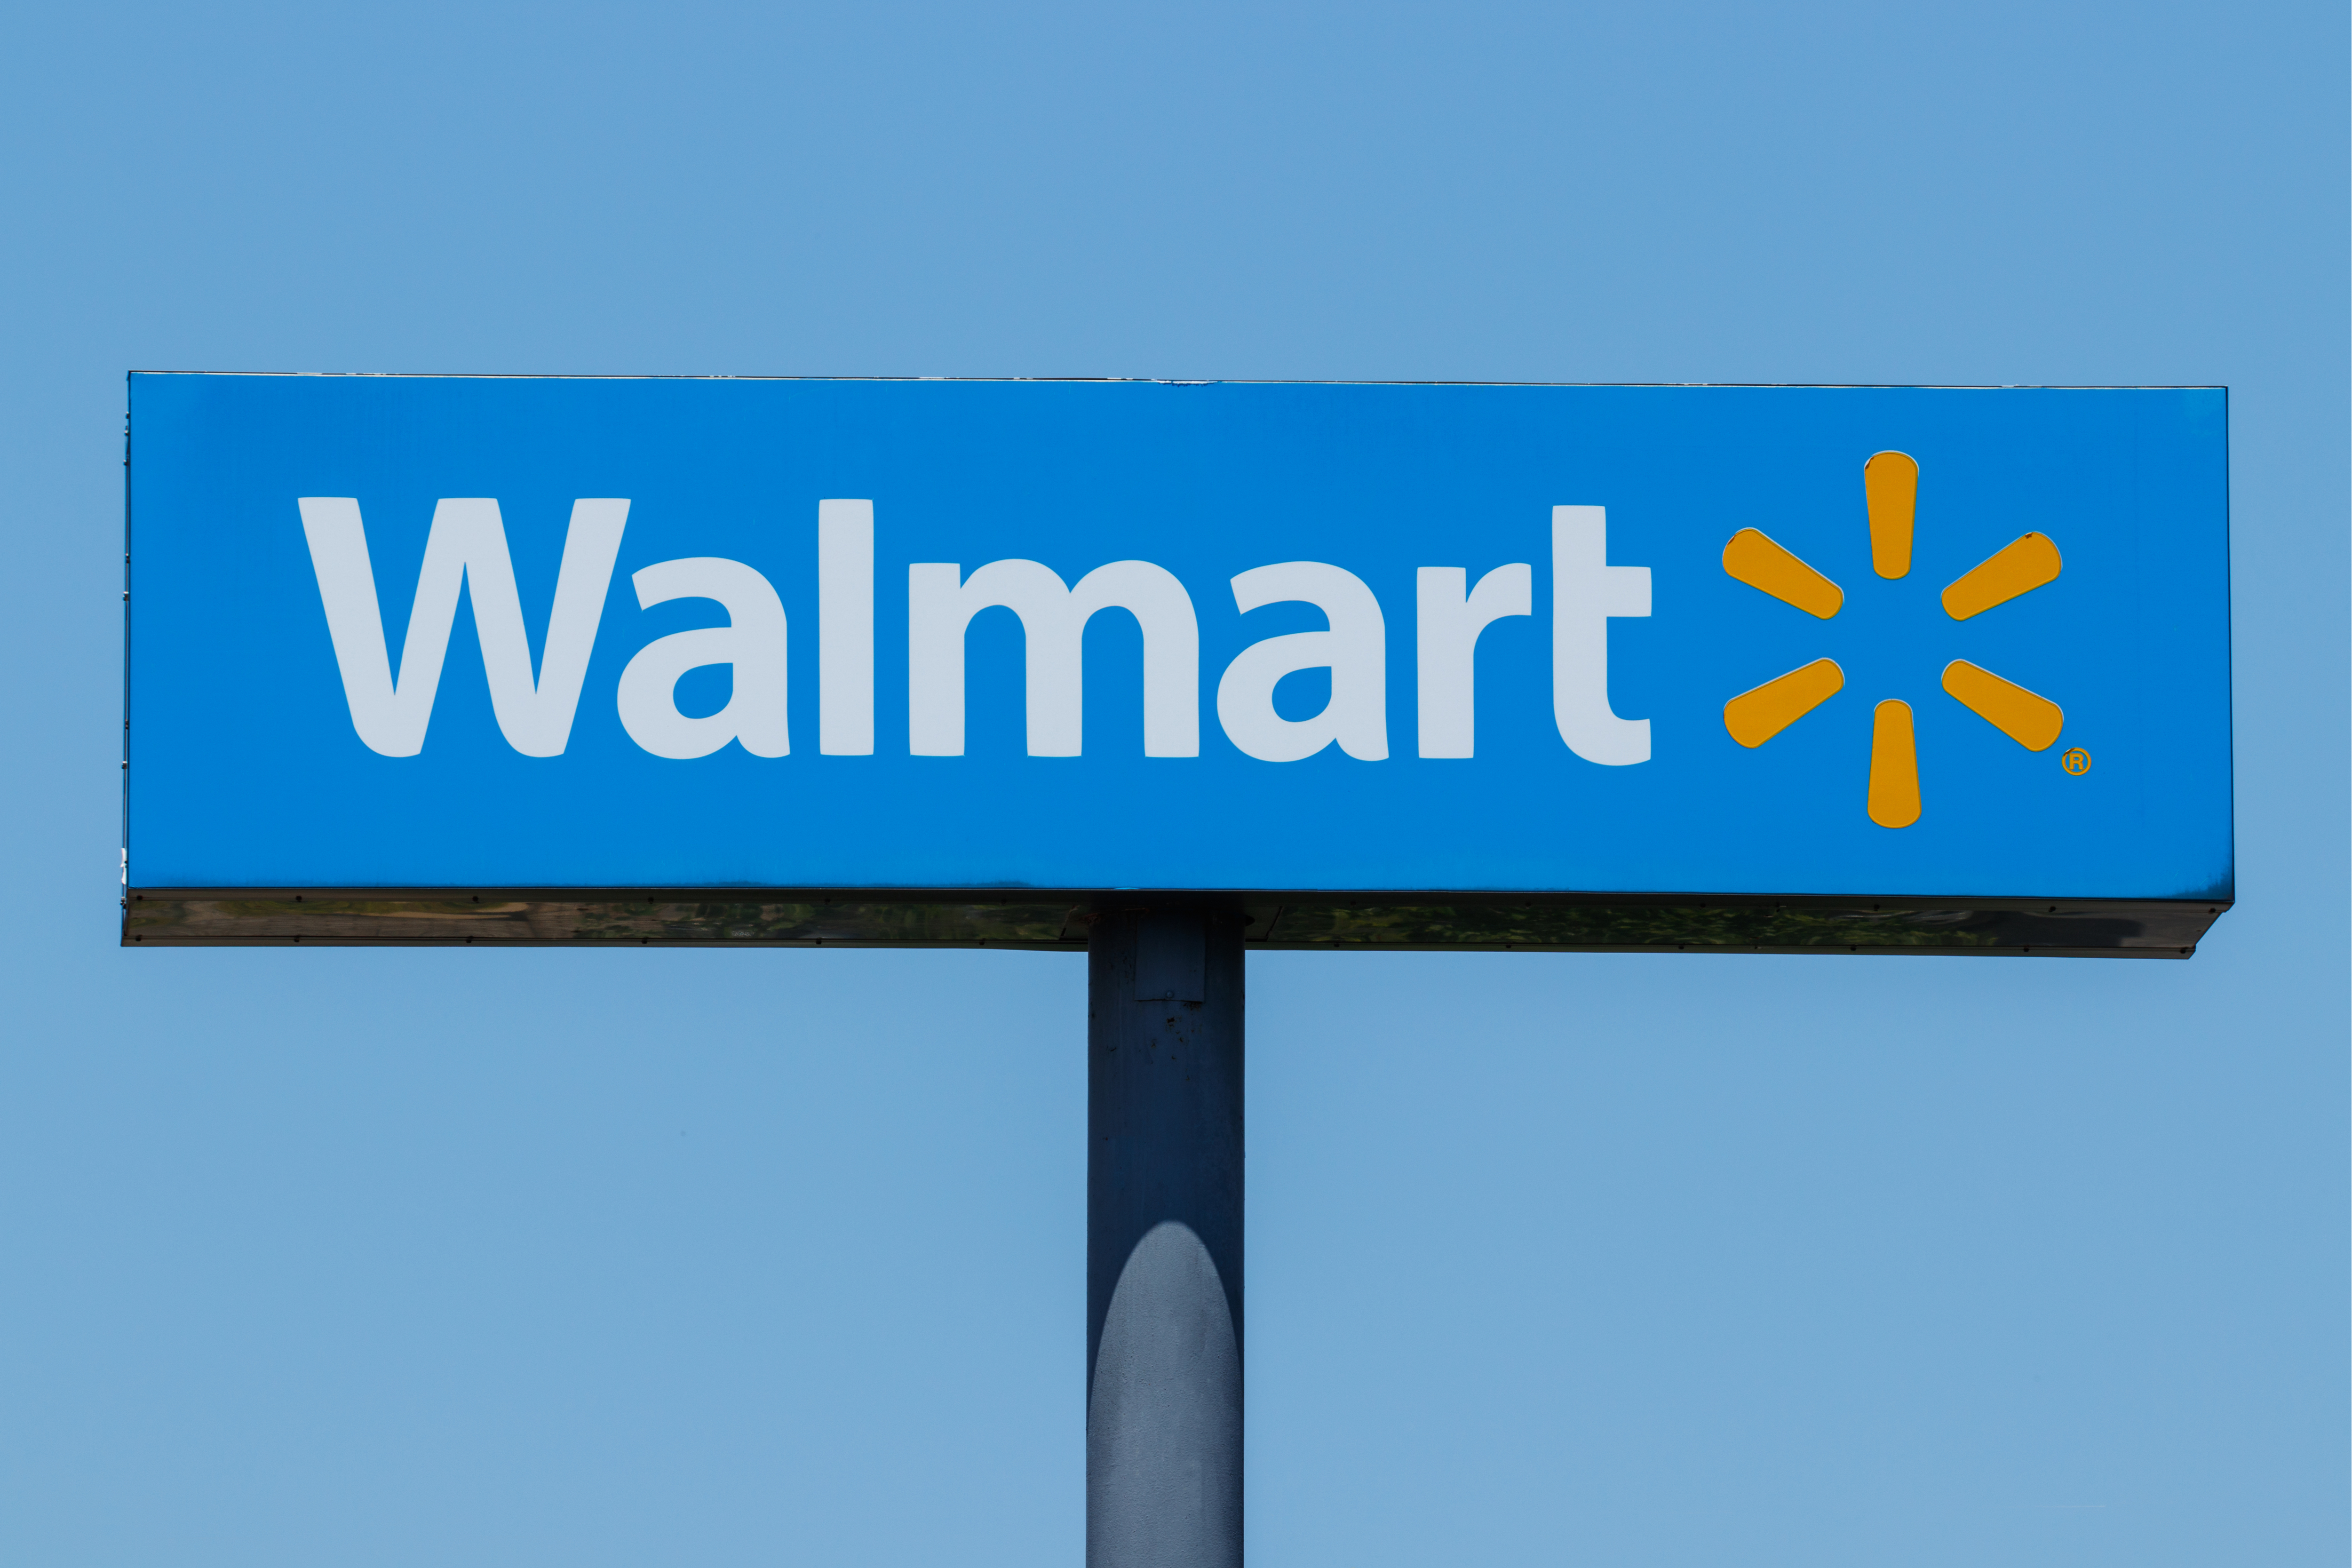 EEOC says Walmart likely discriminated against female workers